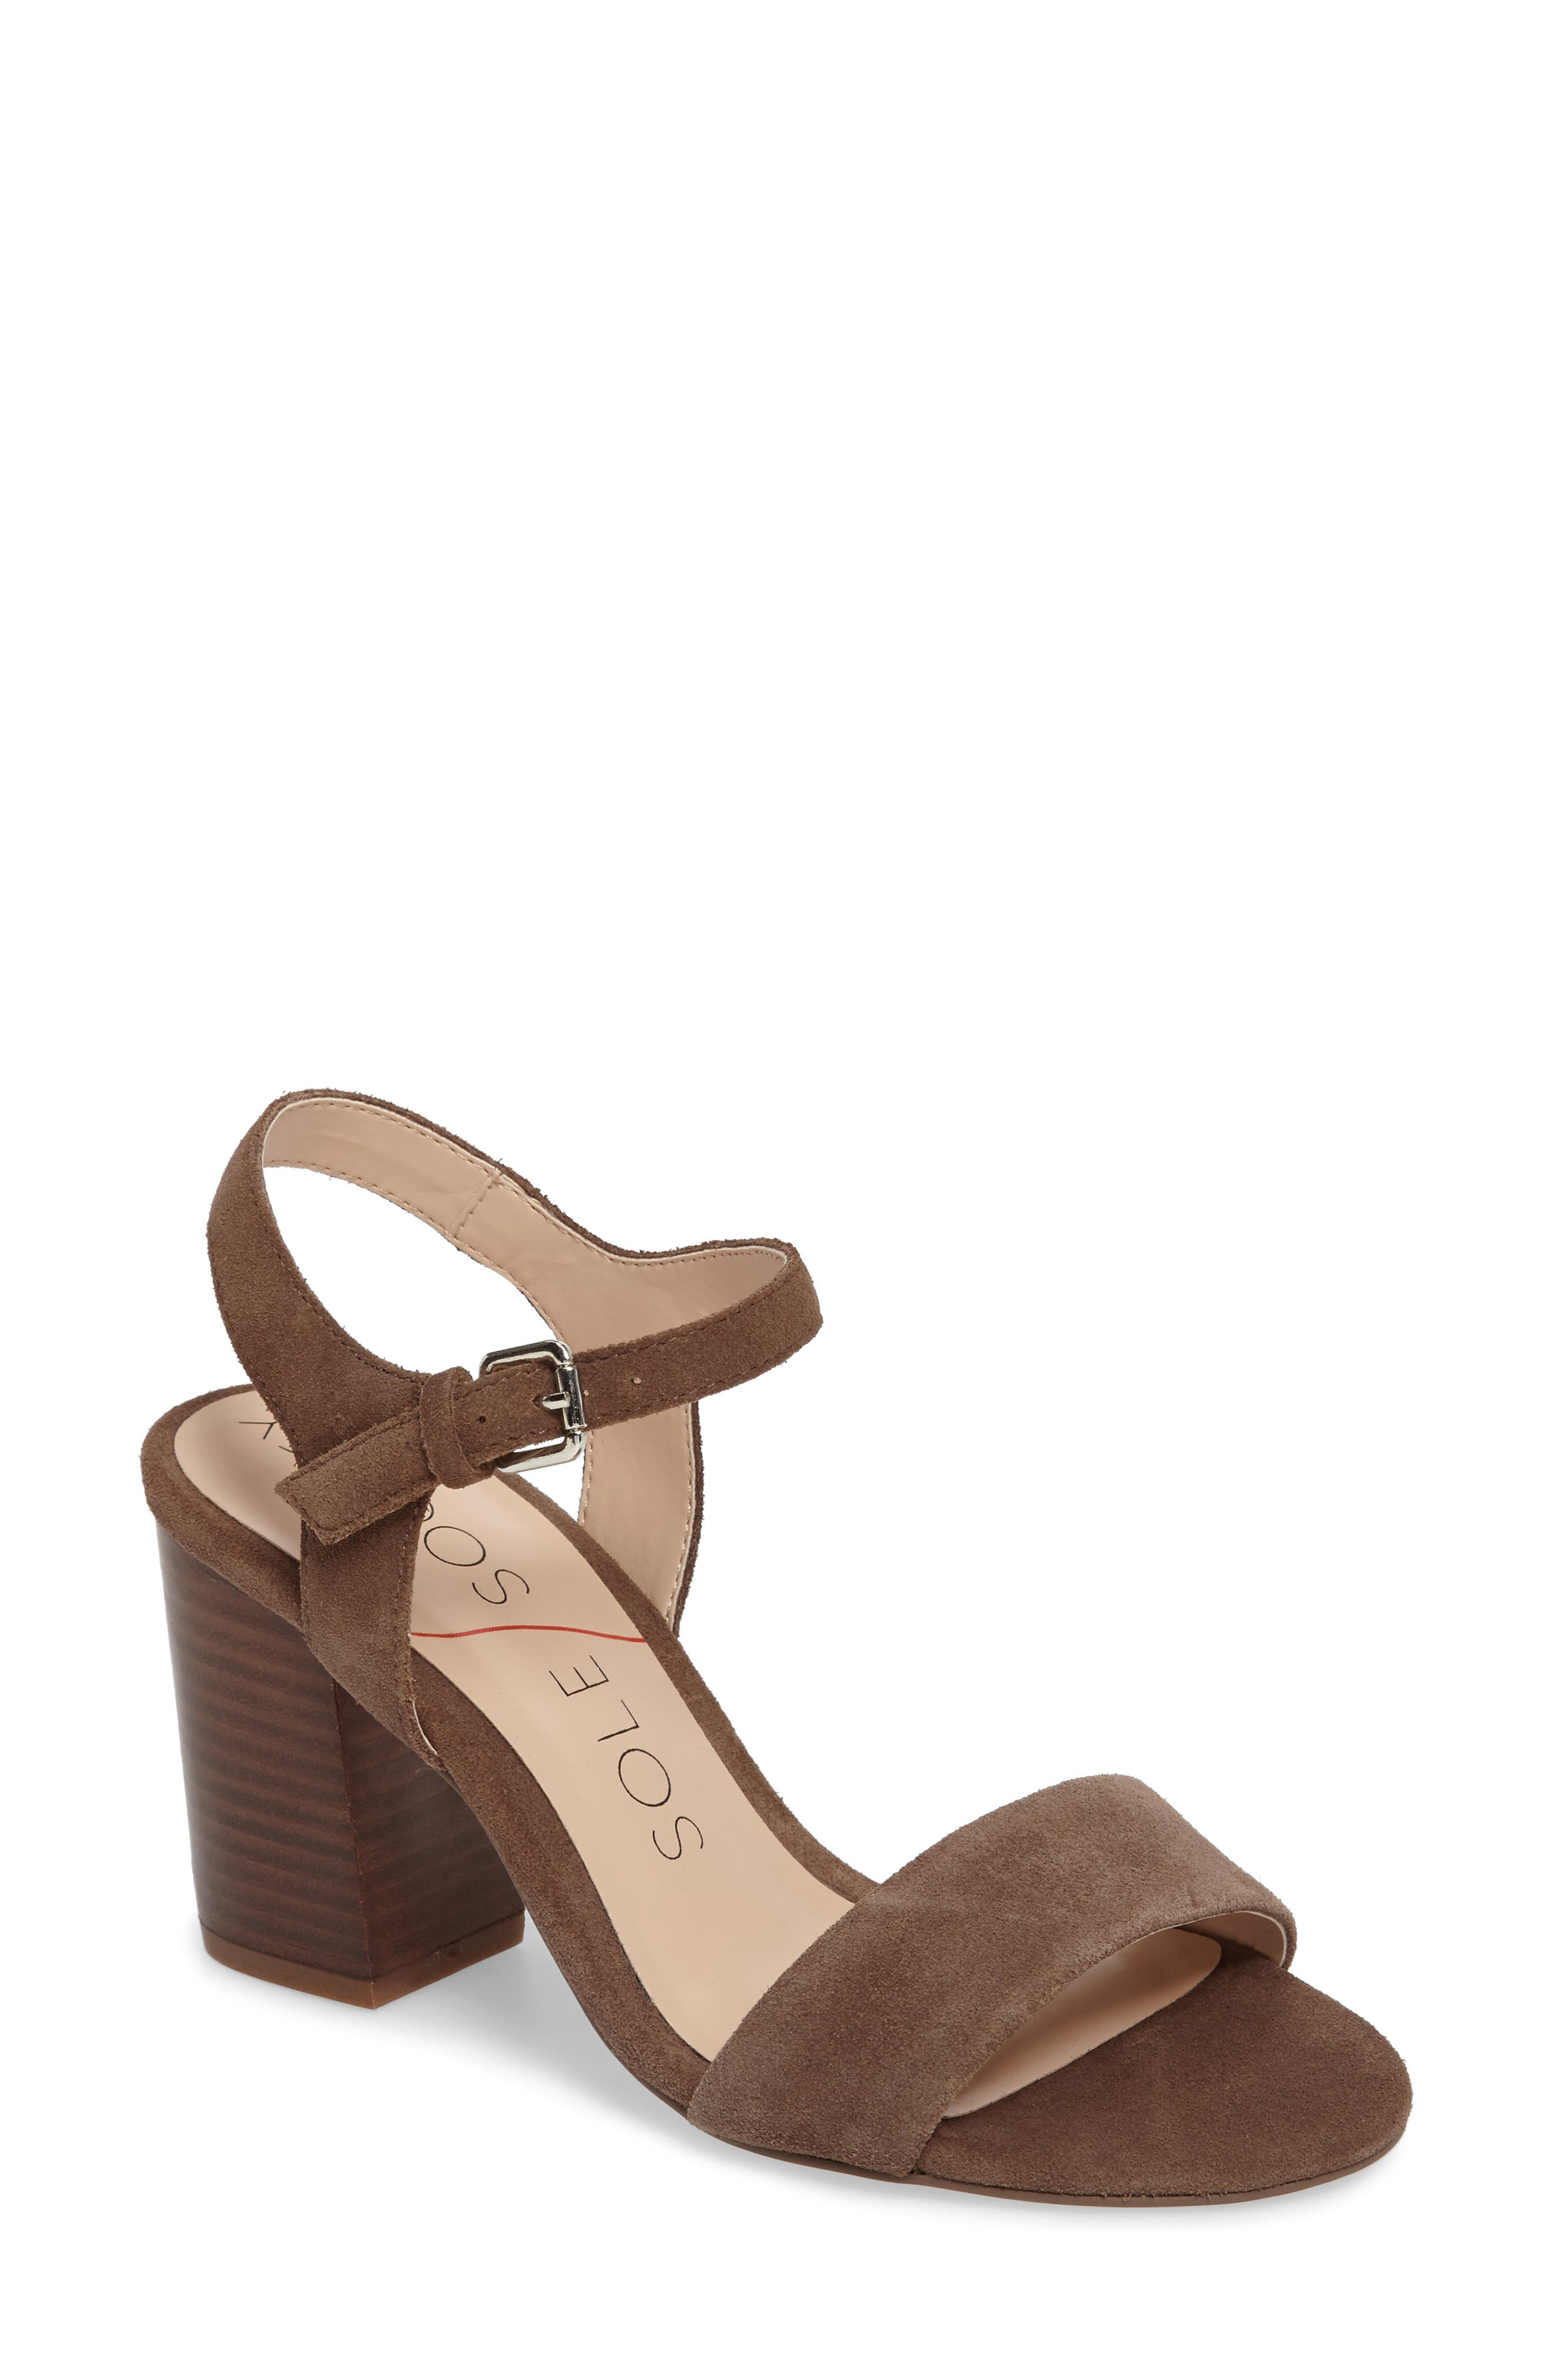 Main Image - Sole Society 'Linny' Ankle Strap Sandal (Women)